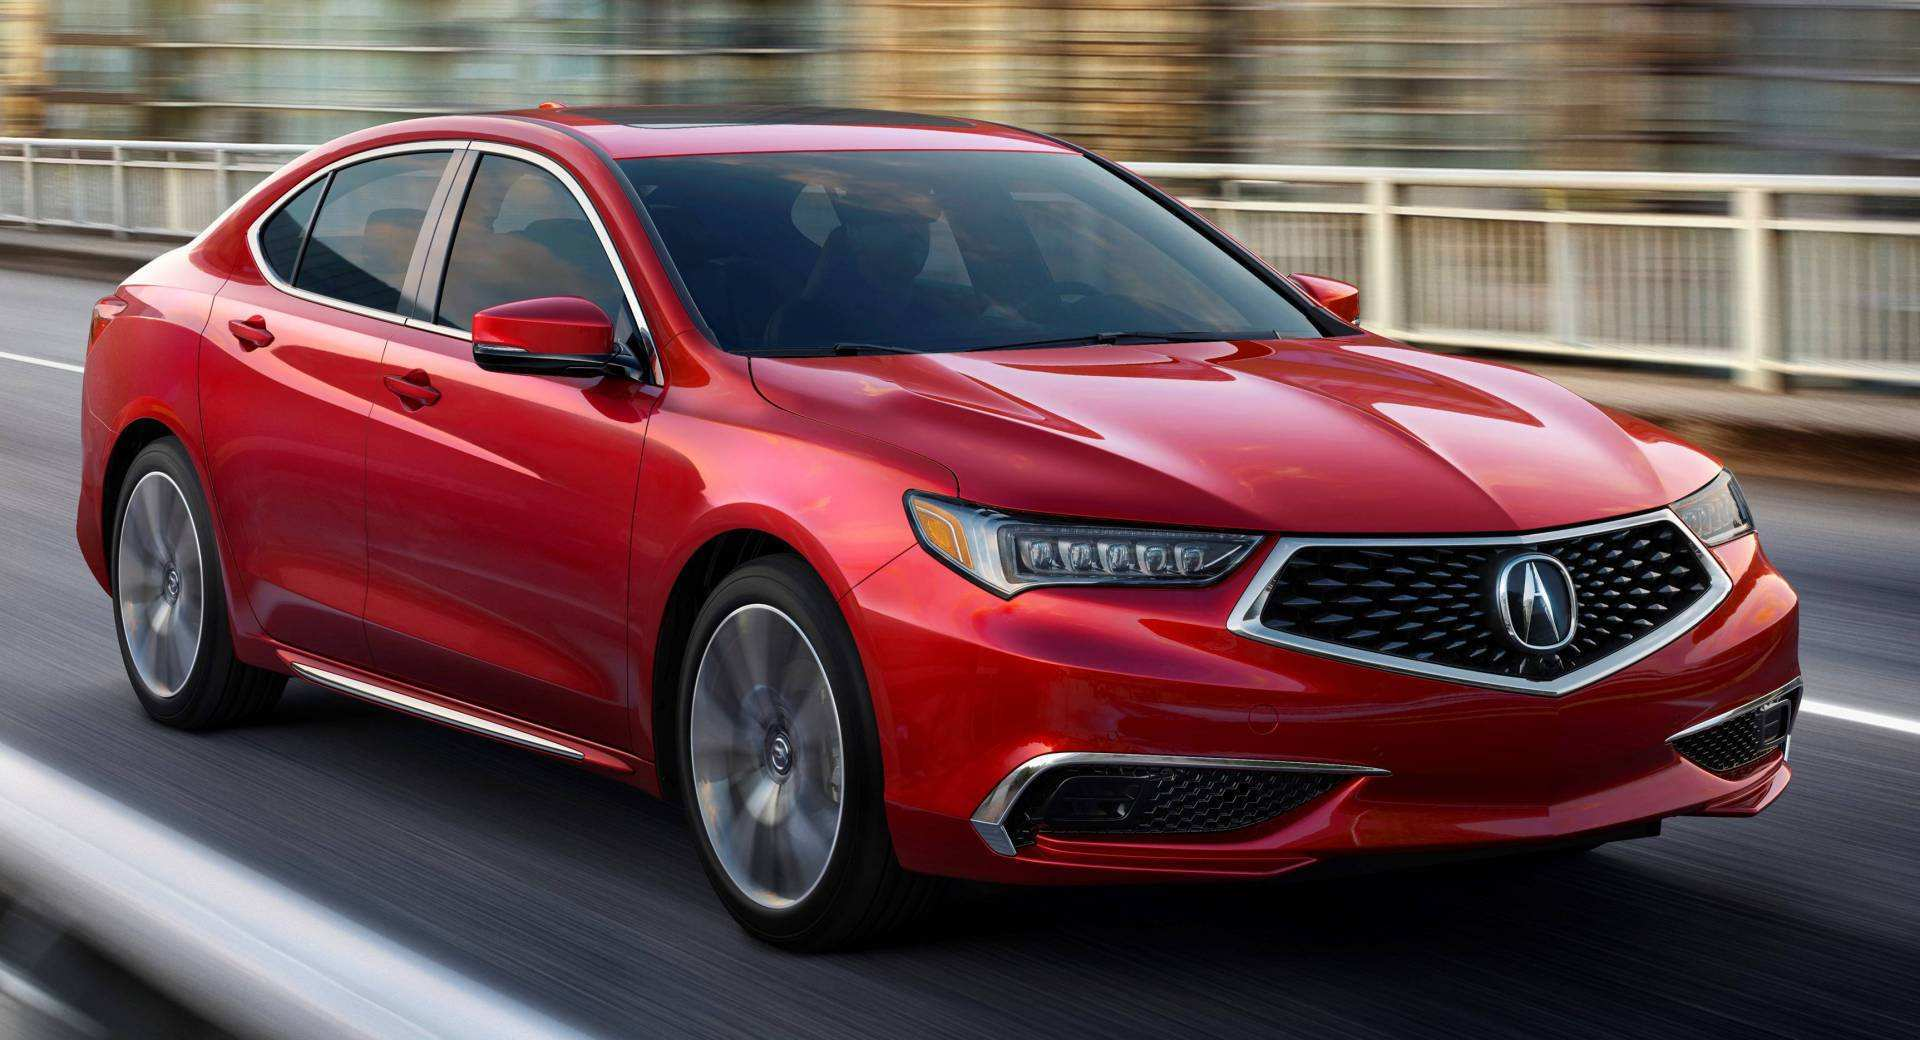 62 The Best When Will 2020 Acura Tlx Be Released Engine